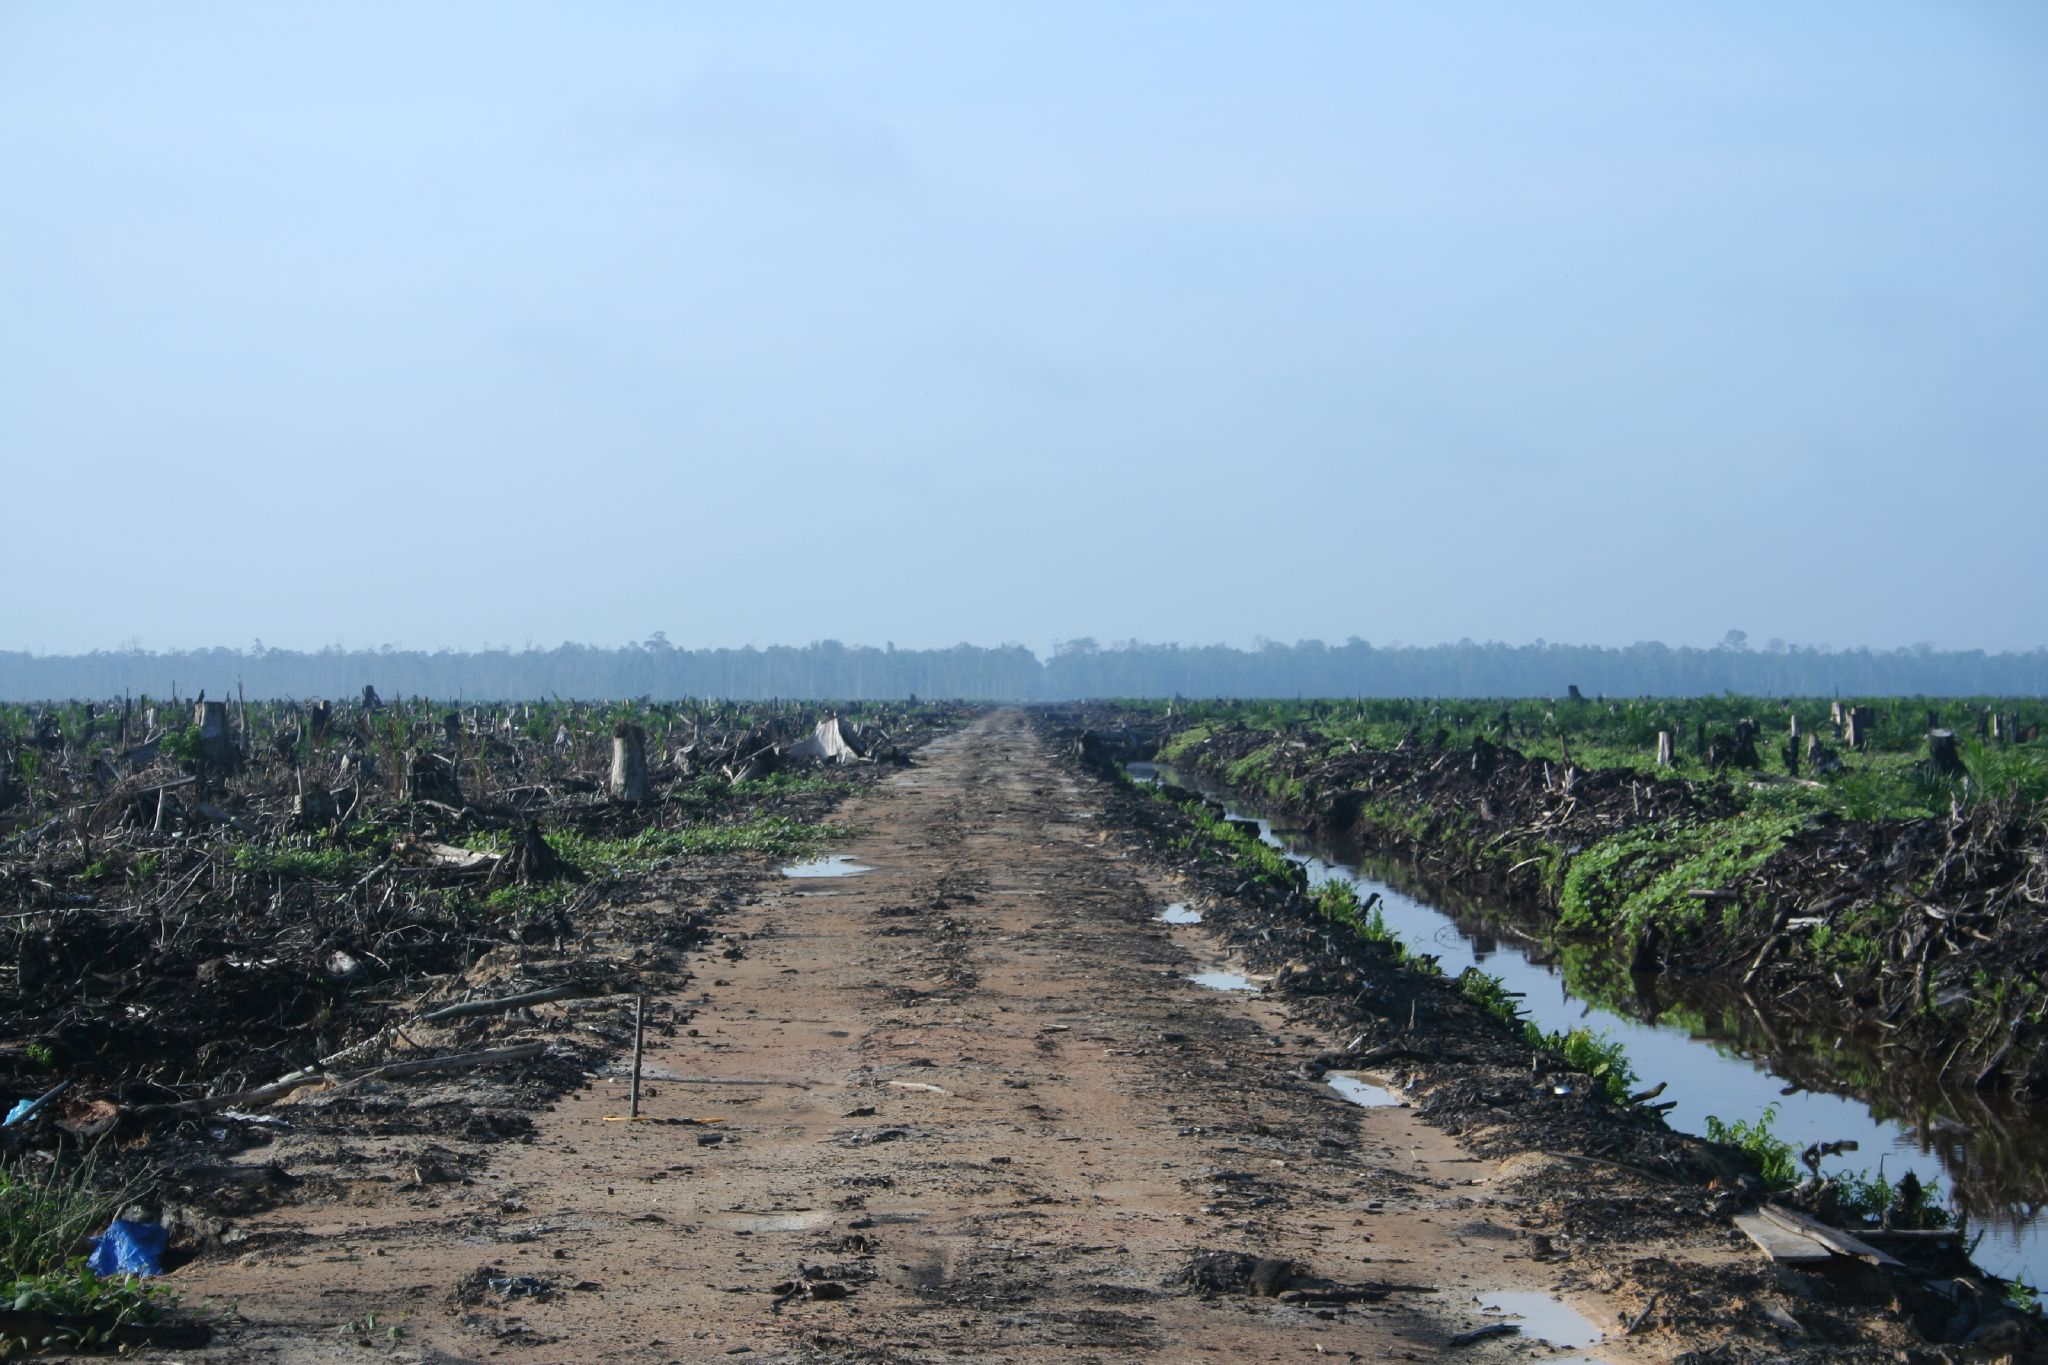 Riau_palm_oil_2007.jpg